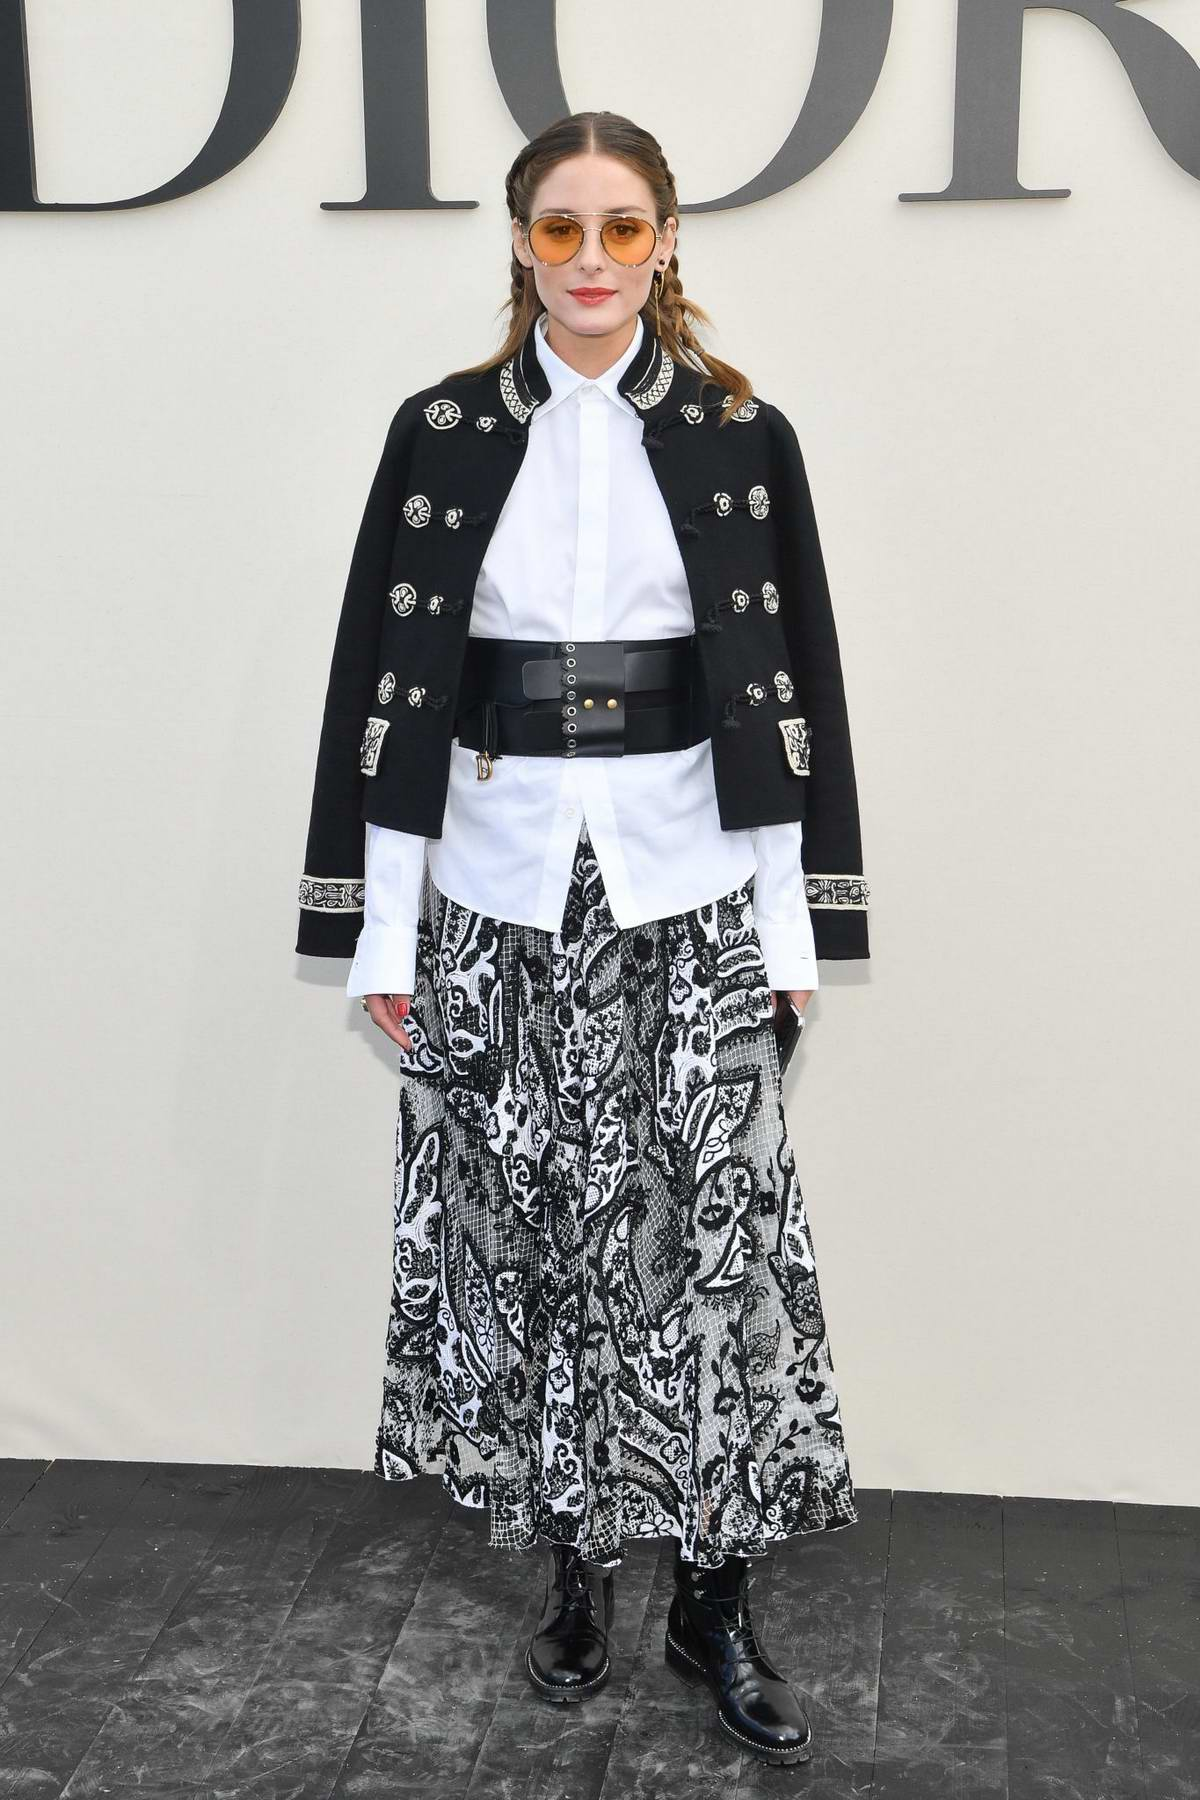 Olivia Palermo attends the Christian Dior Show during Paris Fashion Week in Paris, France